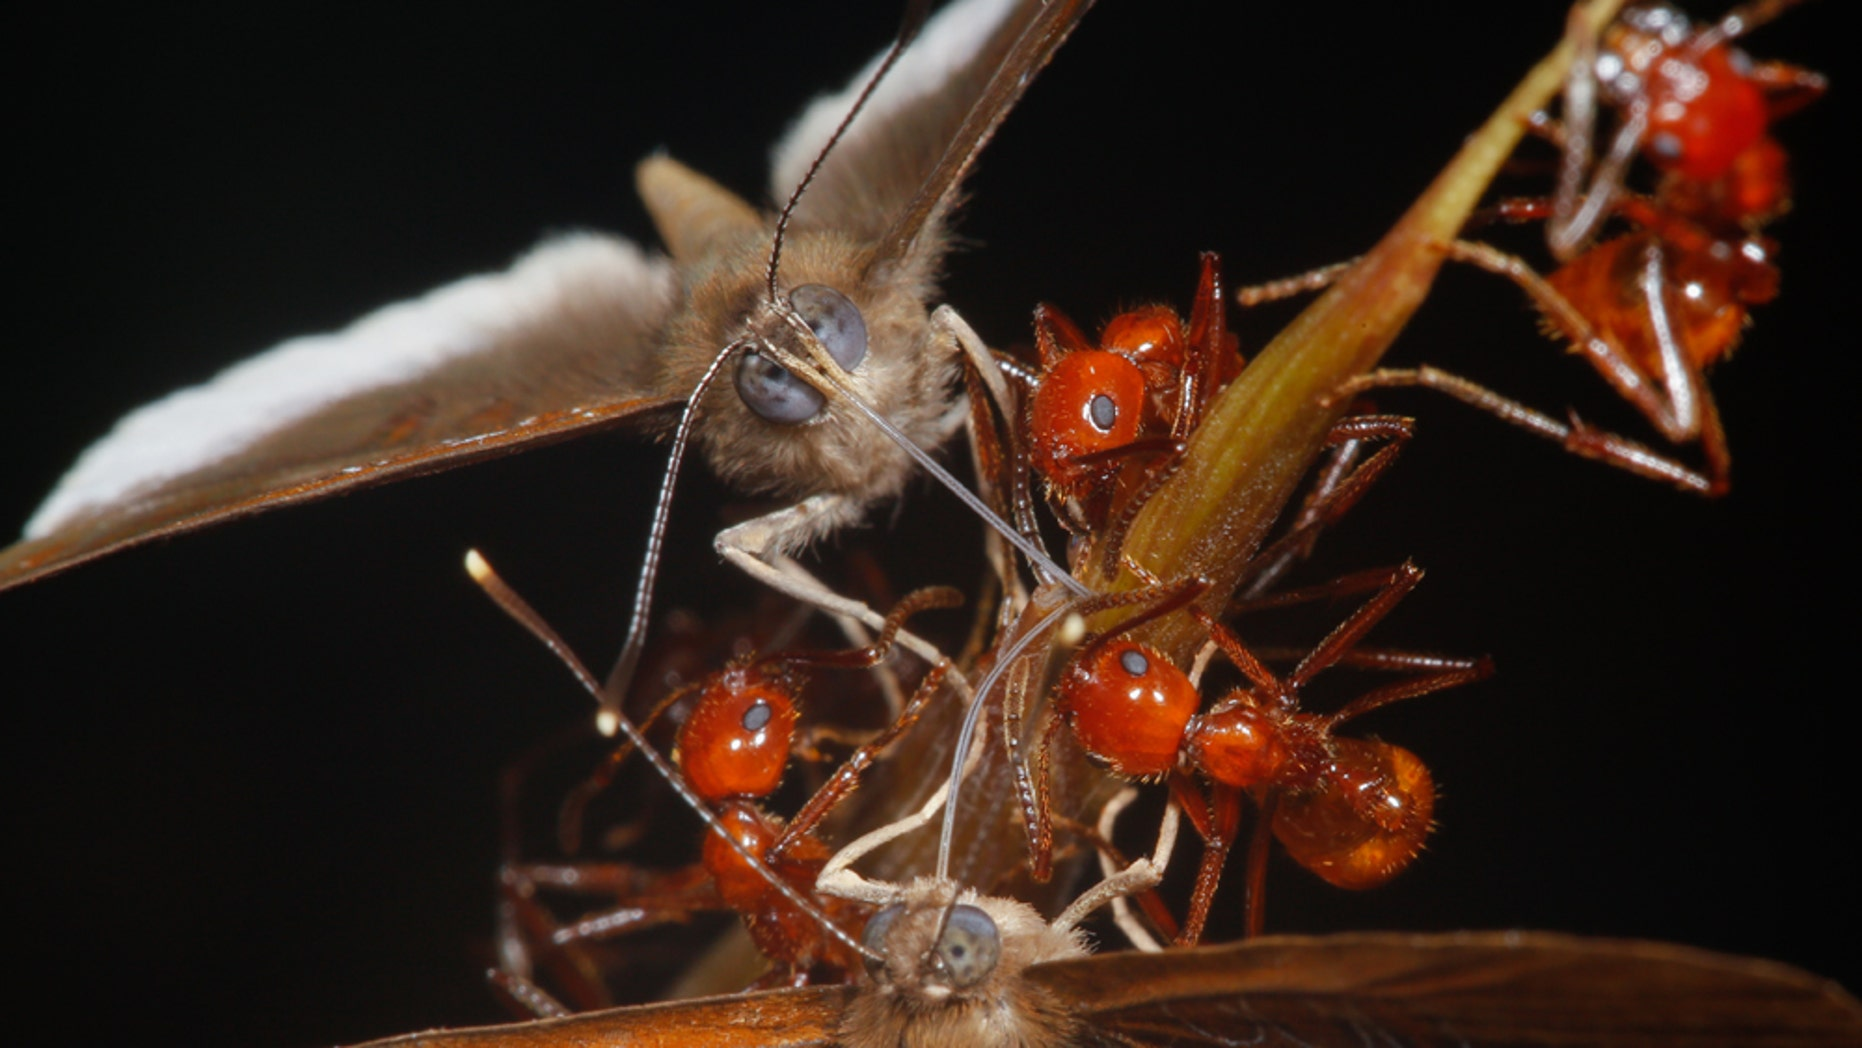 A new study has shown a strange relationship between a butterfly species and the ants it hangs out with. While the larvae and the ants provide mutual benefits to each other, the adult butterflies are freeloaders that stea